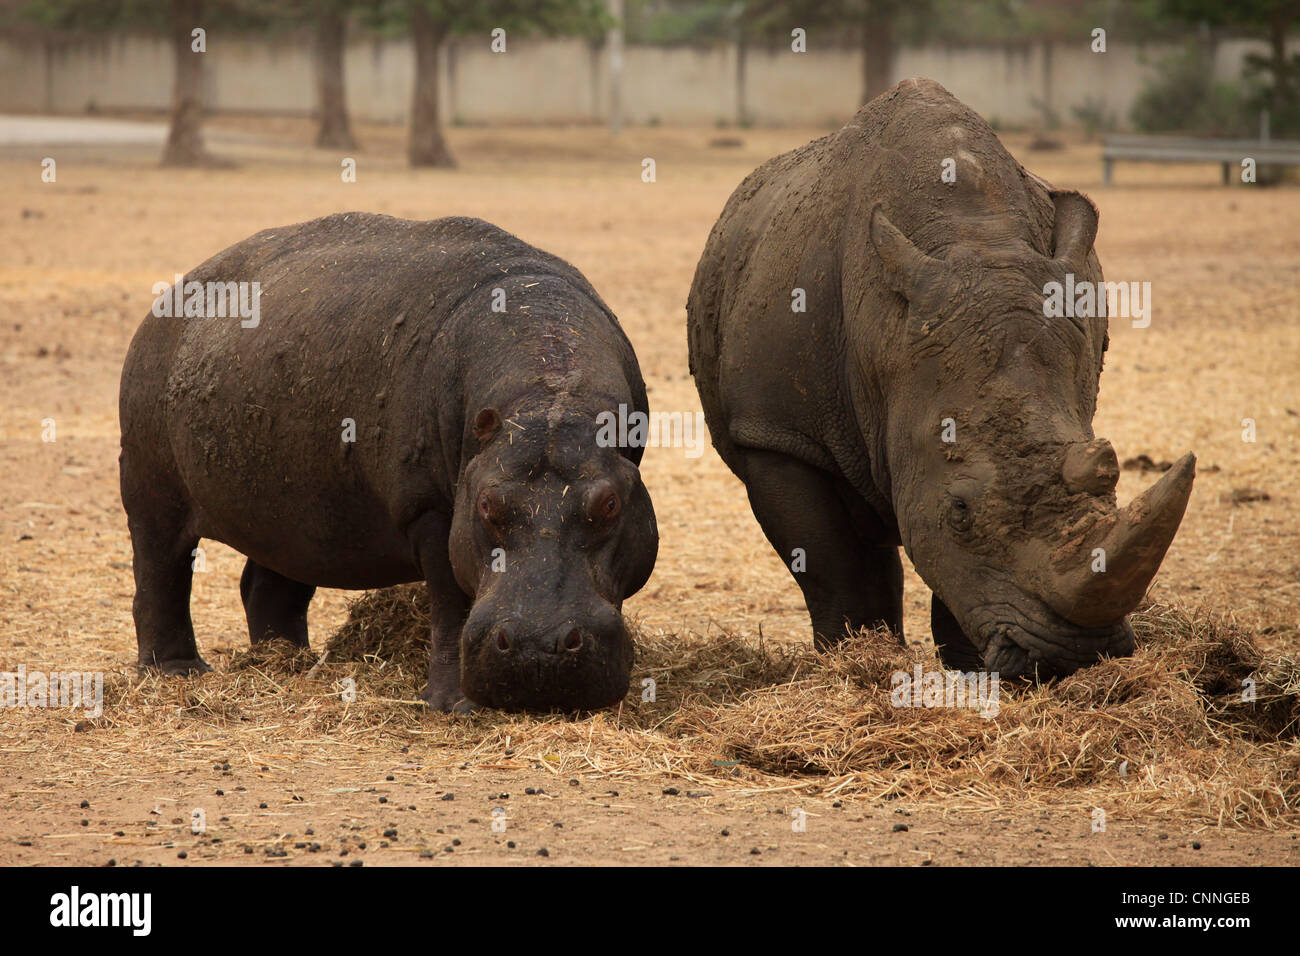 http://c8.alamy.com/comp/CNNGEB/a-rhino-and-a-hippo-eating-together-at-the-open-african-park-of-ramat-CNNGEB.jpg